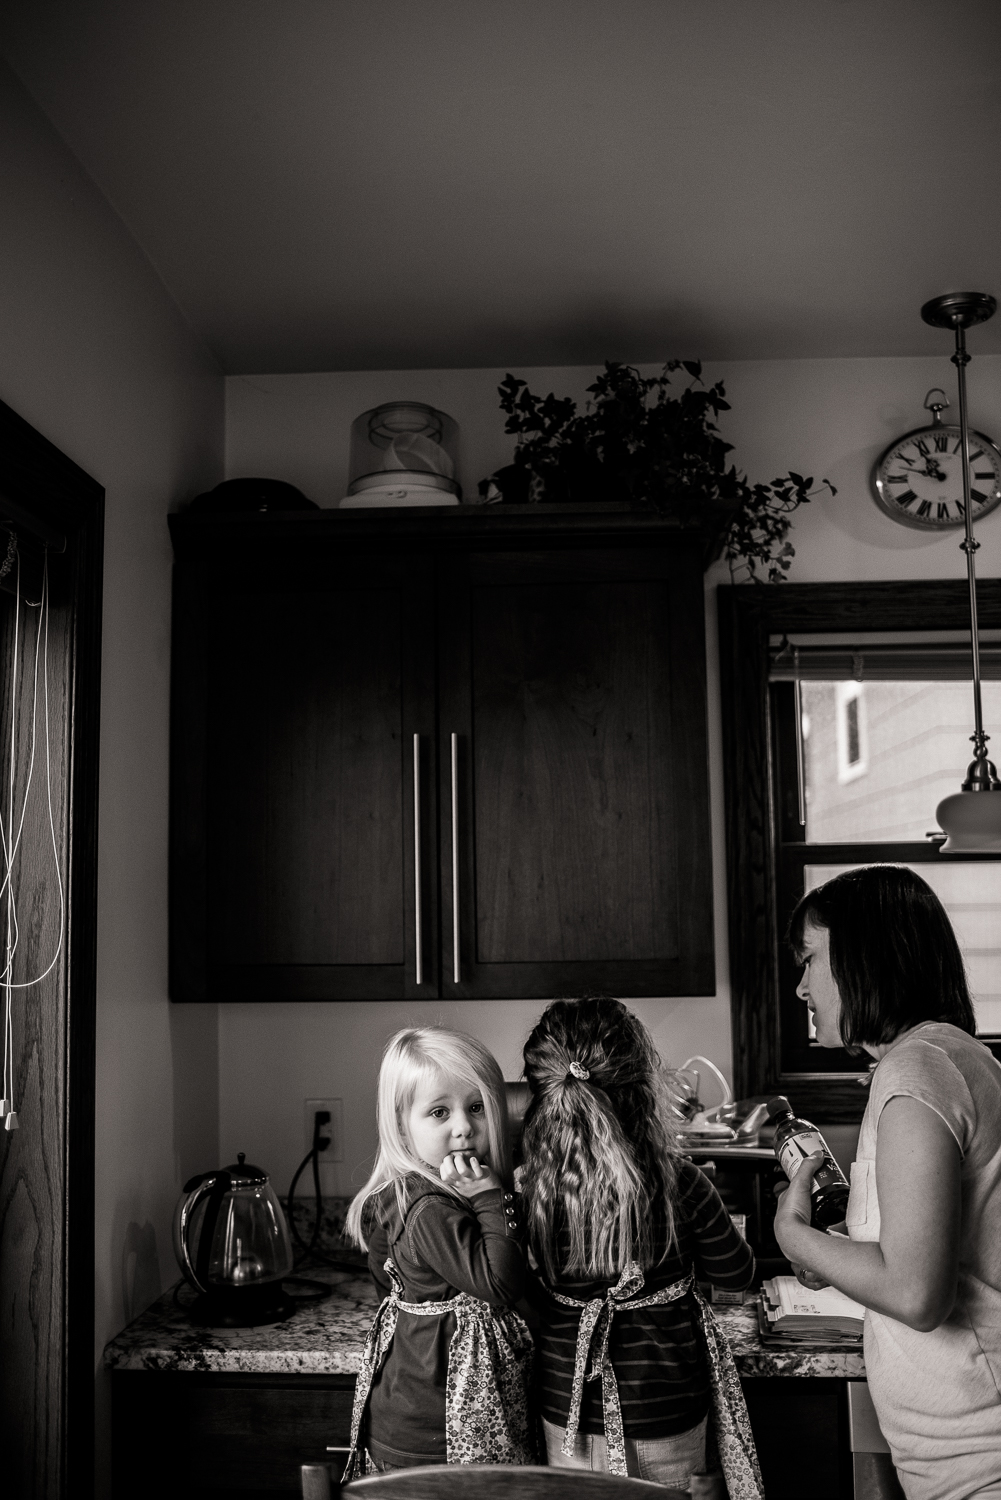 family baking cookies